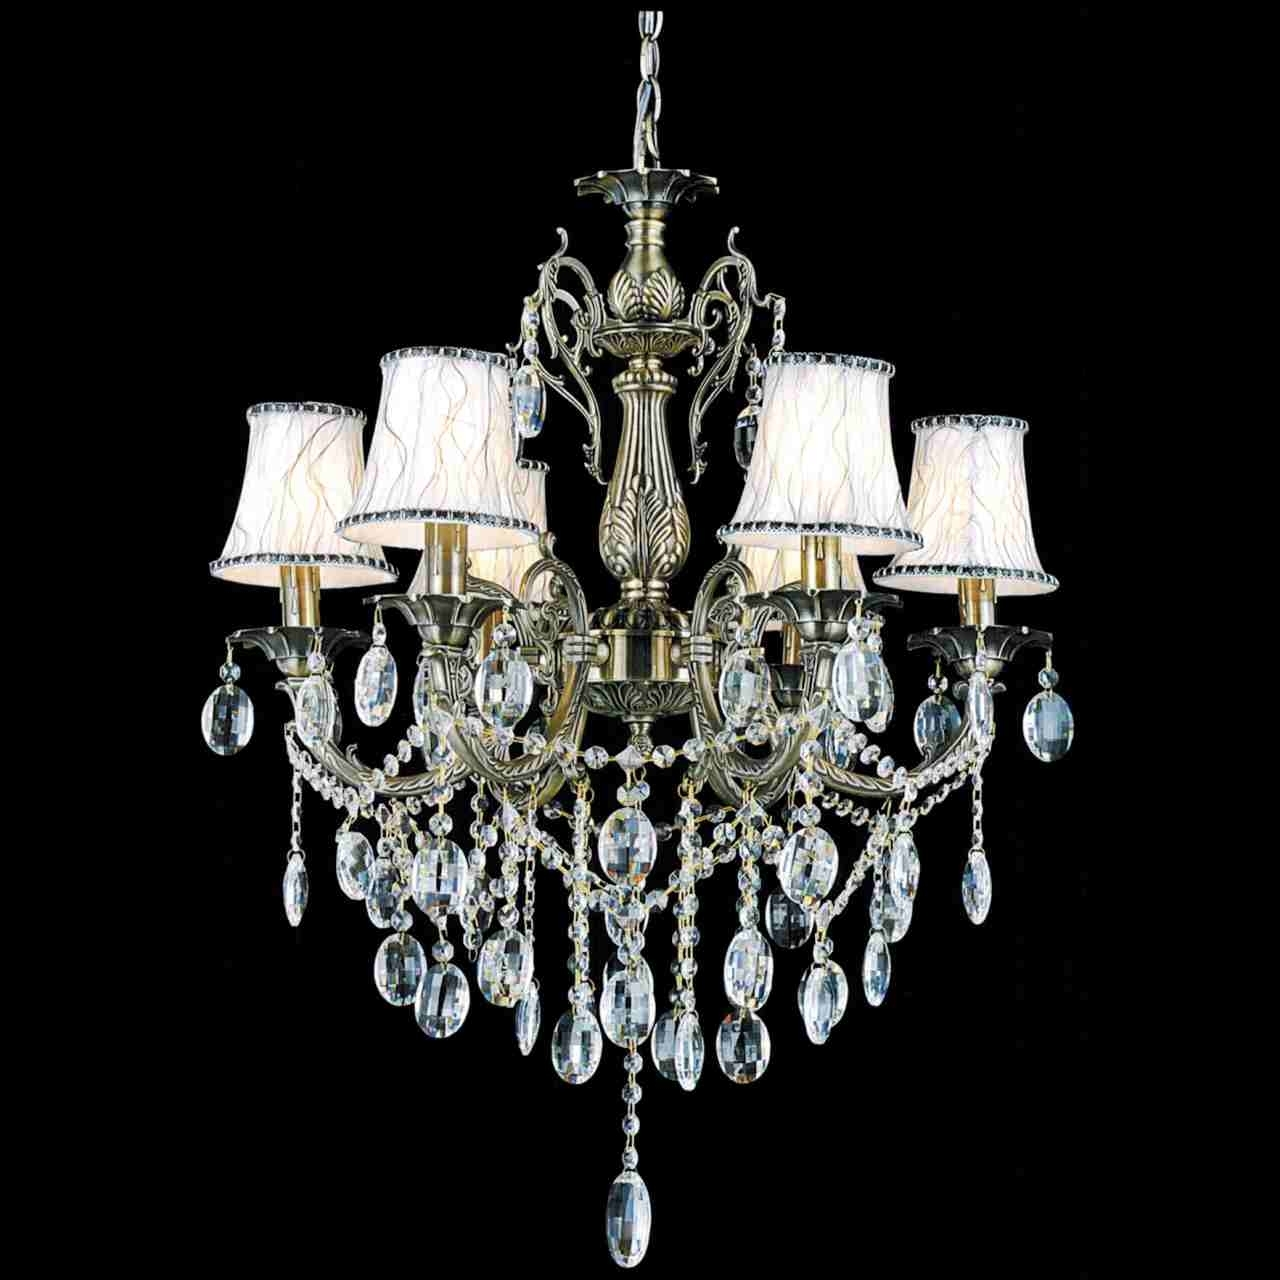 Crystal Chandeliers With Shades Regarding Favorite Brizzo Lighting Stores (View 7 of 20)